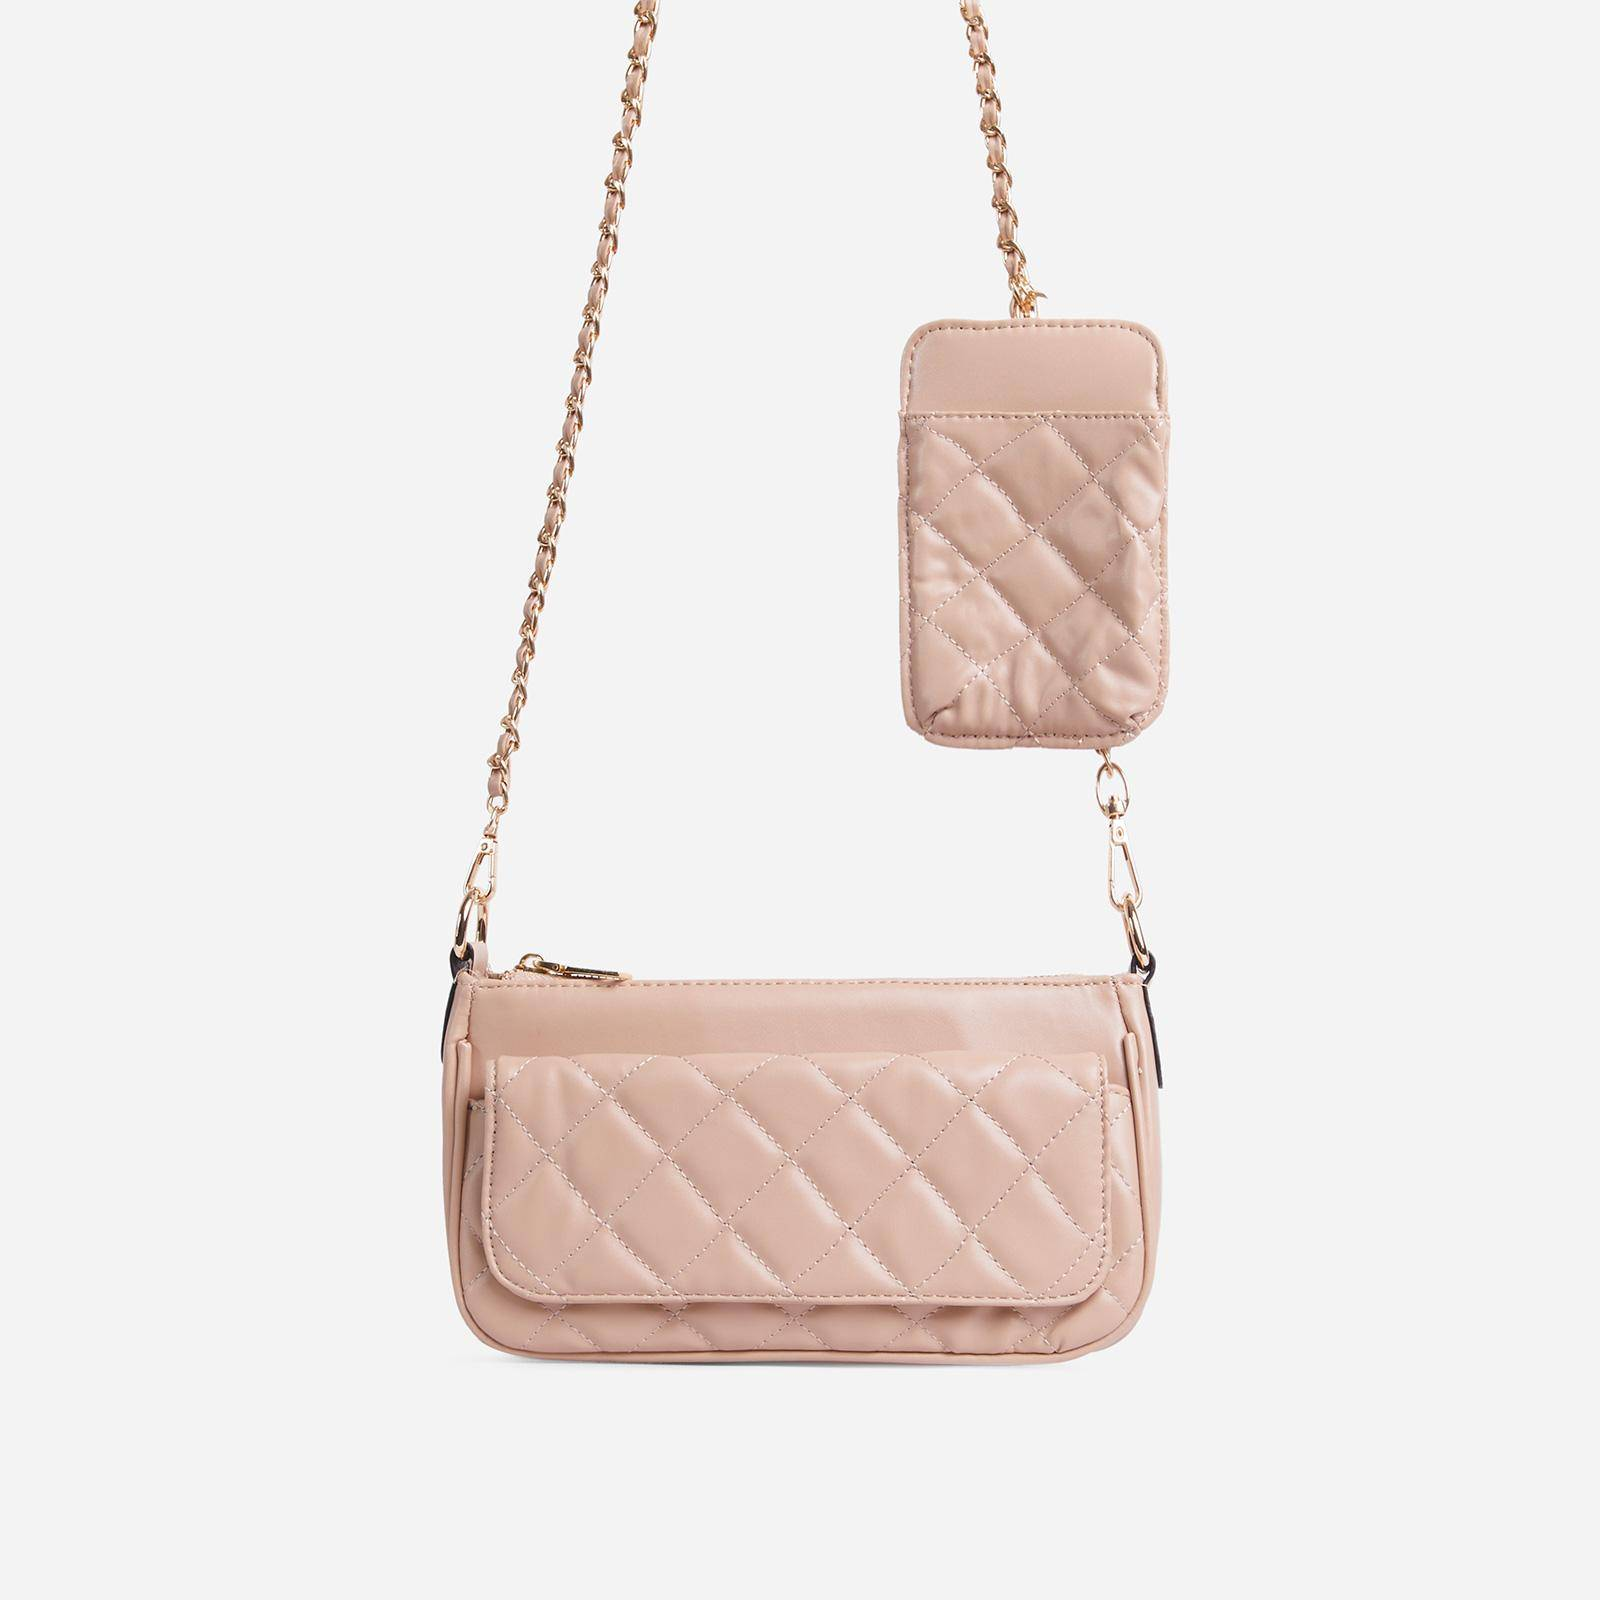 Ryan Phone Pocket Pouch Quilted Cross Body Bag In Nude Faux Leather, Nude  - female - Size: One Size